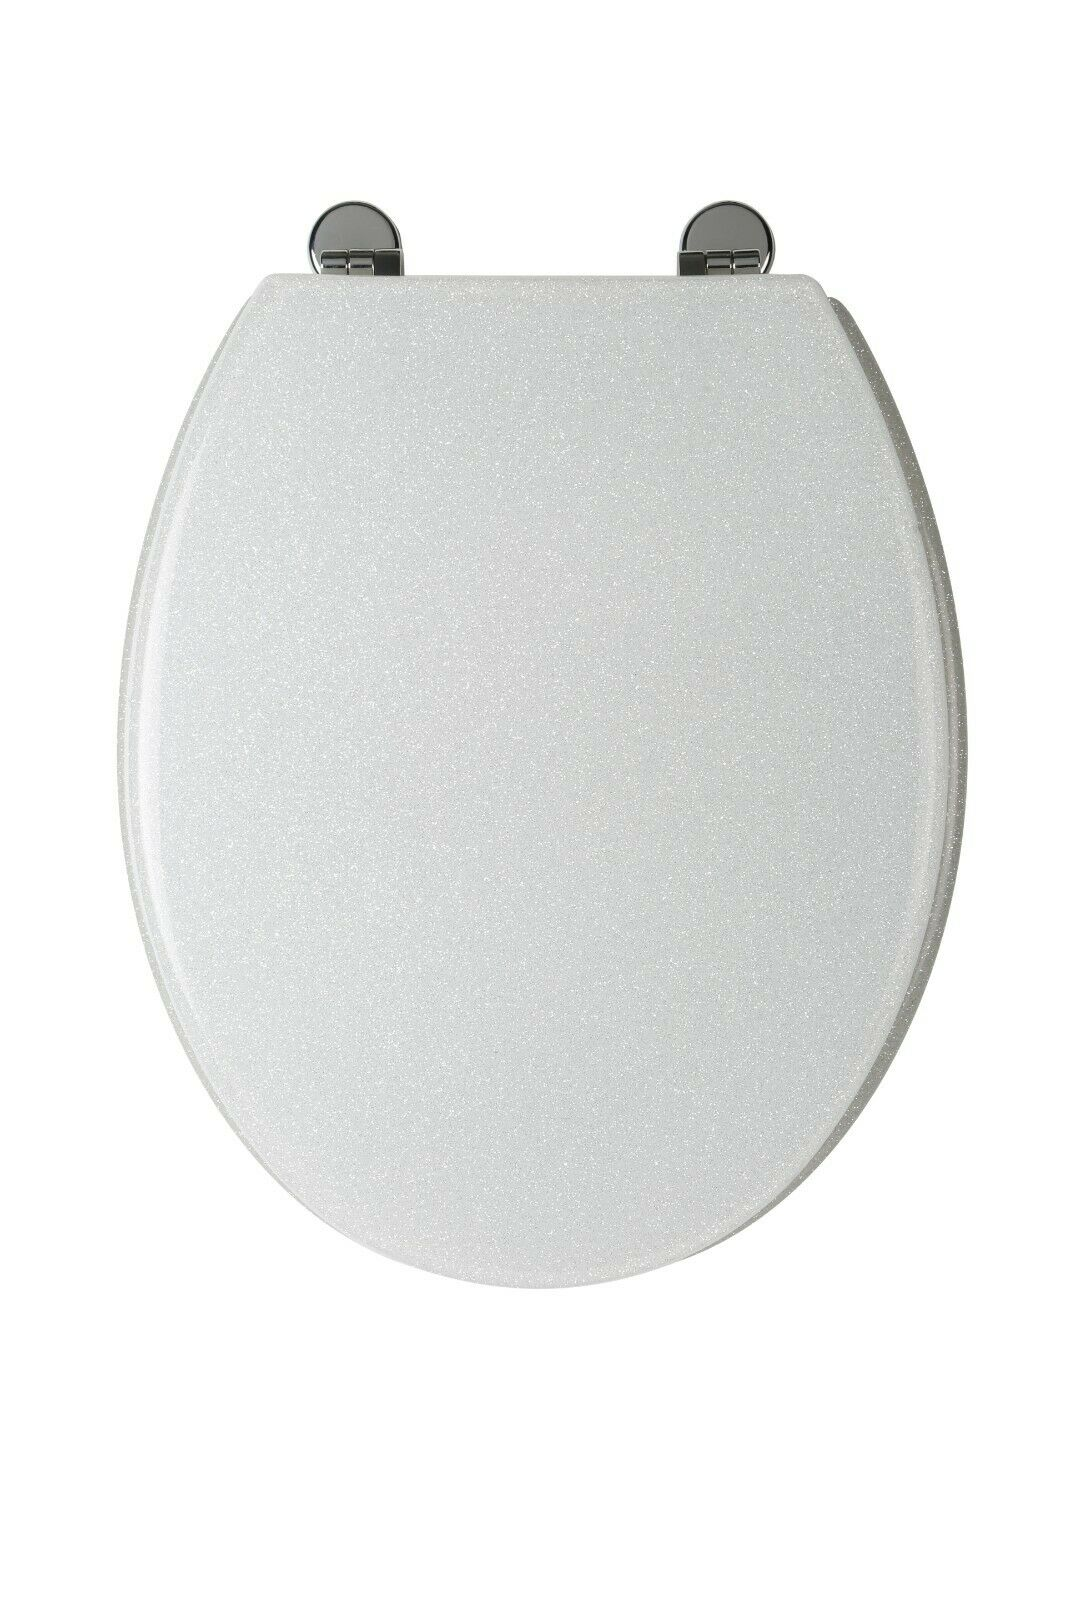 Fantastic Croydex Wl101022 Toilet Seat White Glitter Gmtry Best Dining Table And Chair Ideas Images Gmtryco